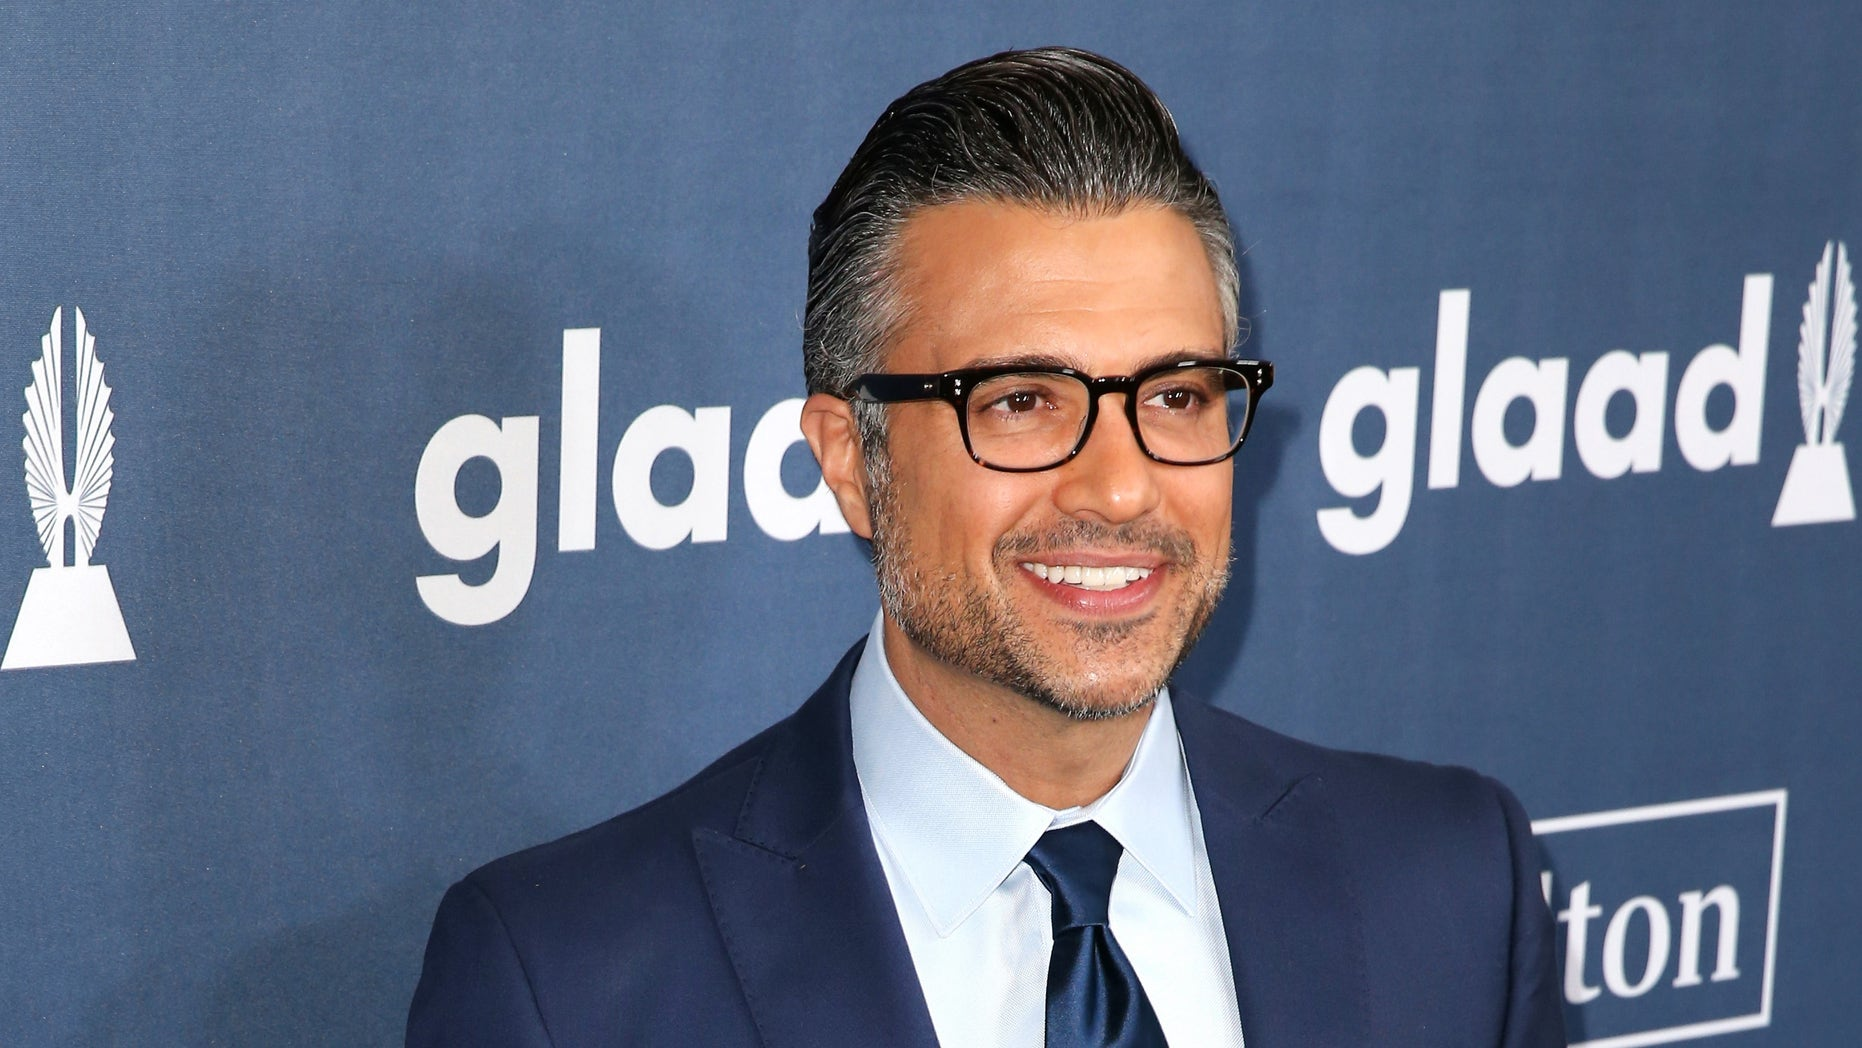 BEVERLY HILLS, CALIFORNIA - APRIL 02:  Actor Jaime Camil attends the 27th Annual GLAAD Media Awards hosted by Ketel One Vodka at the Beverly Hilton on April 2, 2016 in Beverly Hills, California.  (Photo by Joe Scarnici/Getty Images)